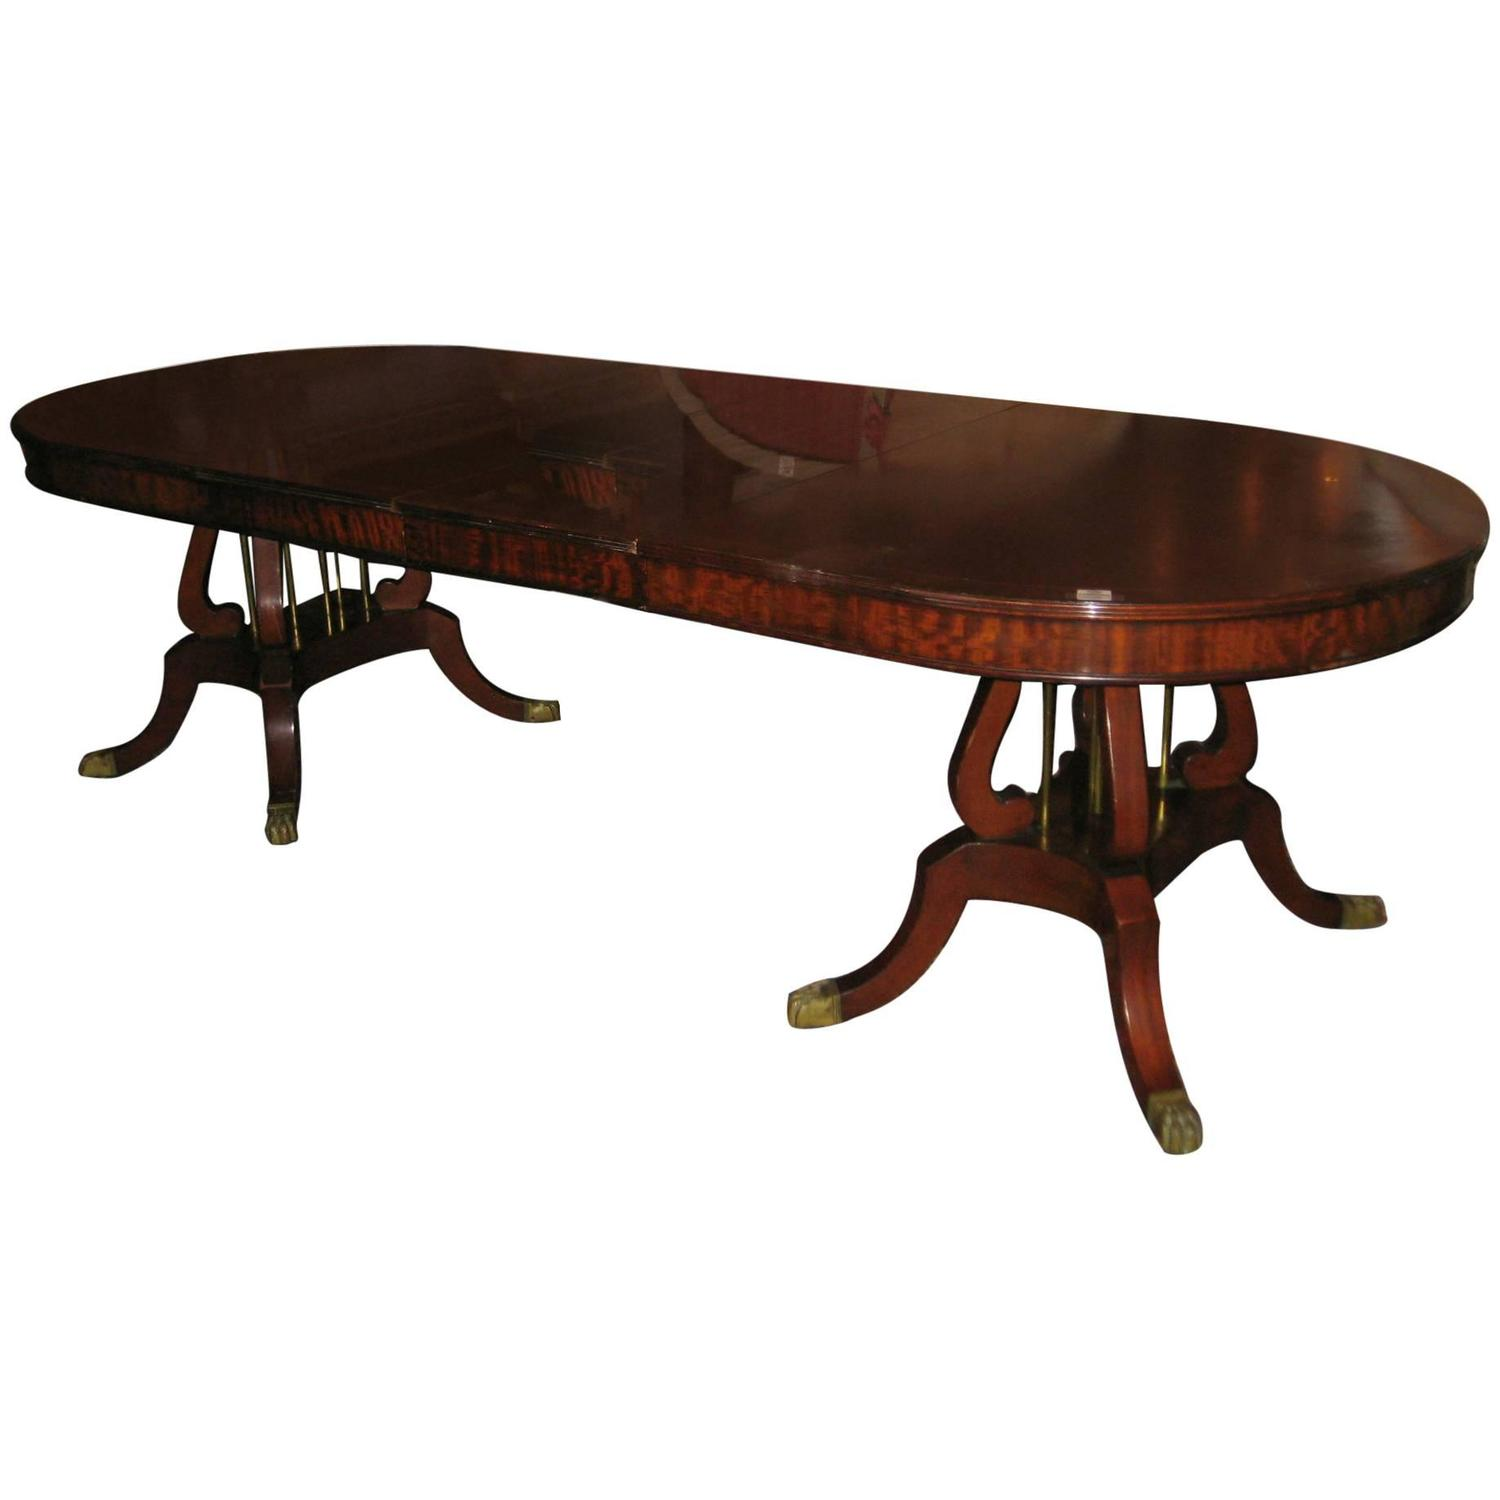 Federal style mahogany double pedestal dining table at 1stdibs for Dining room table styles